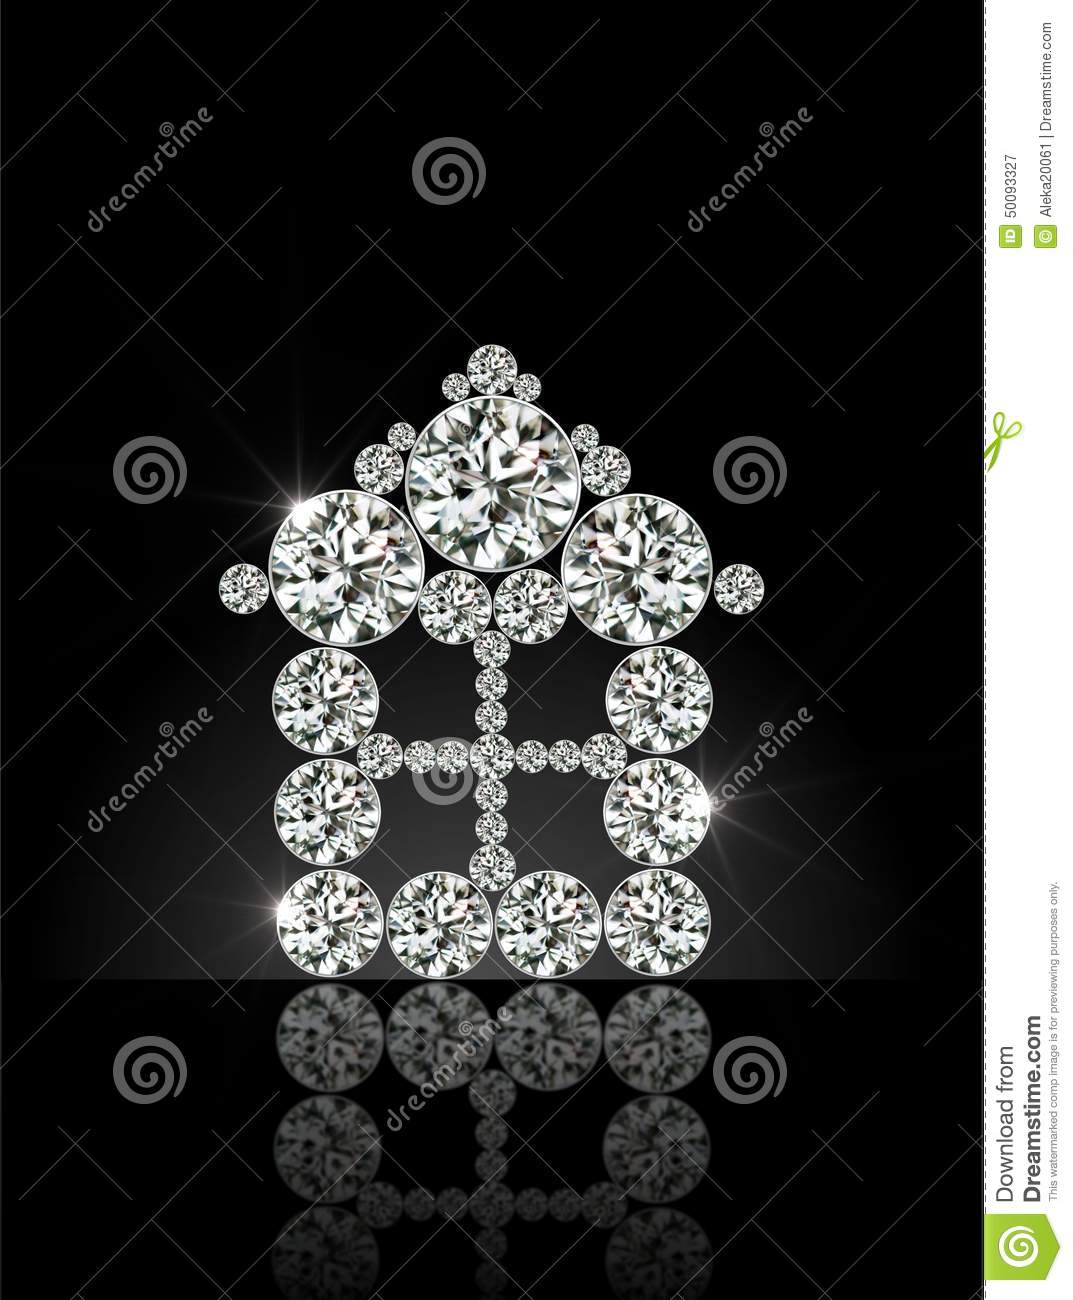 diamond house on a black background stock illustration - image